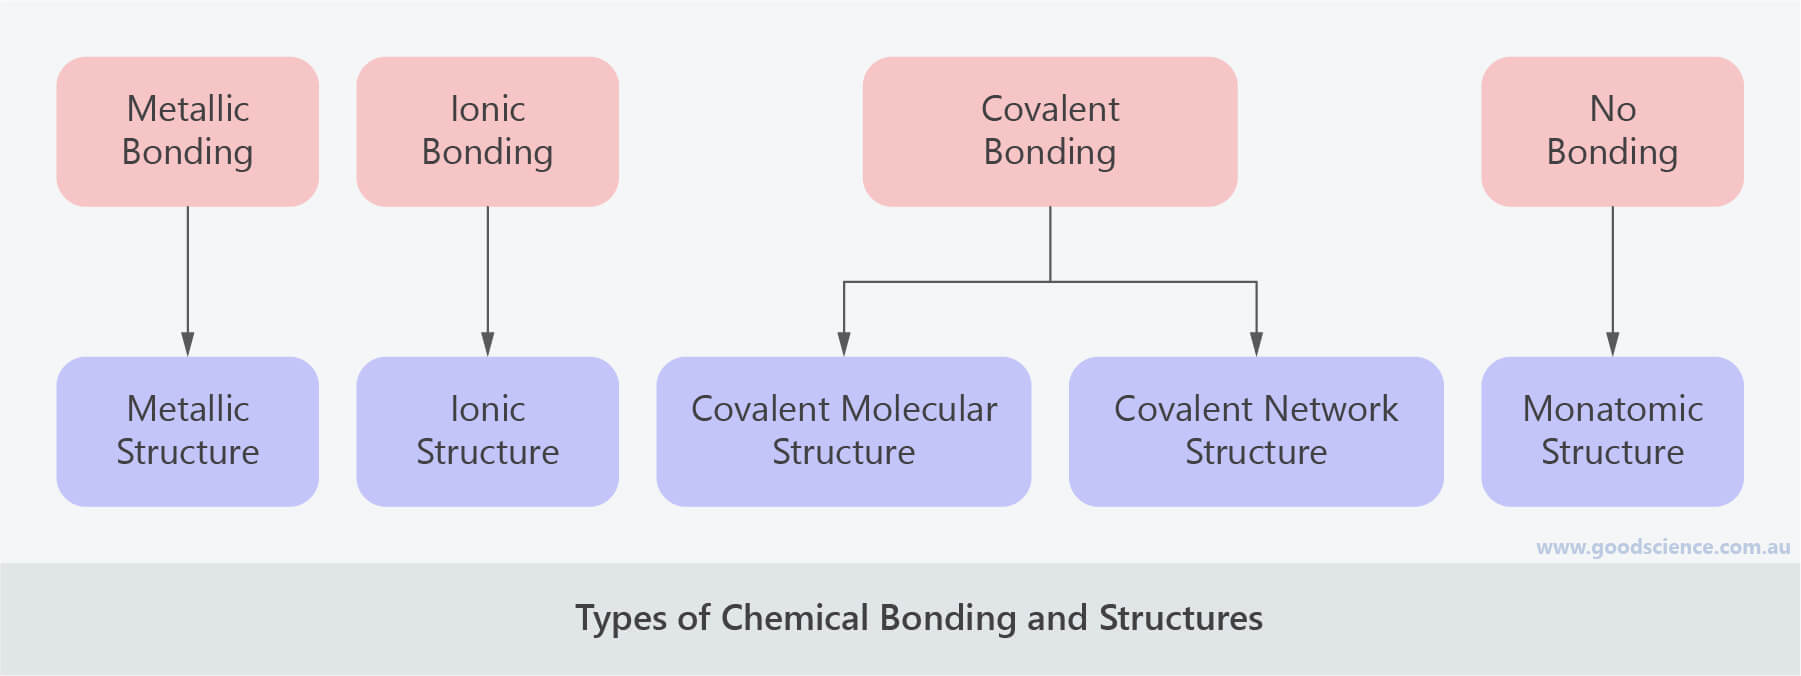 types of bonding and structures